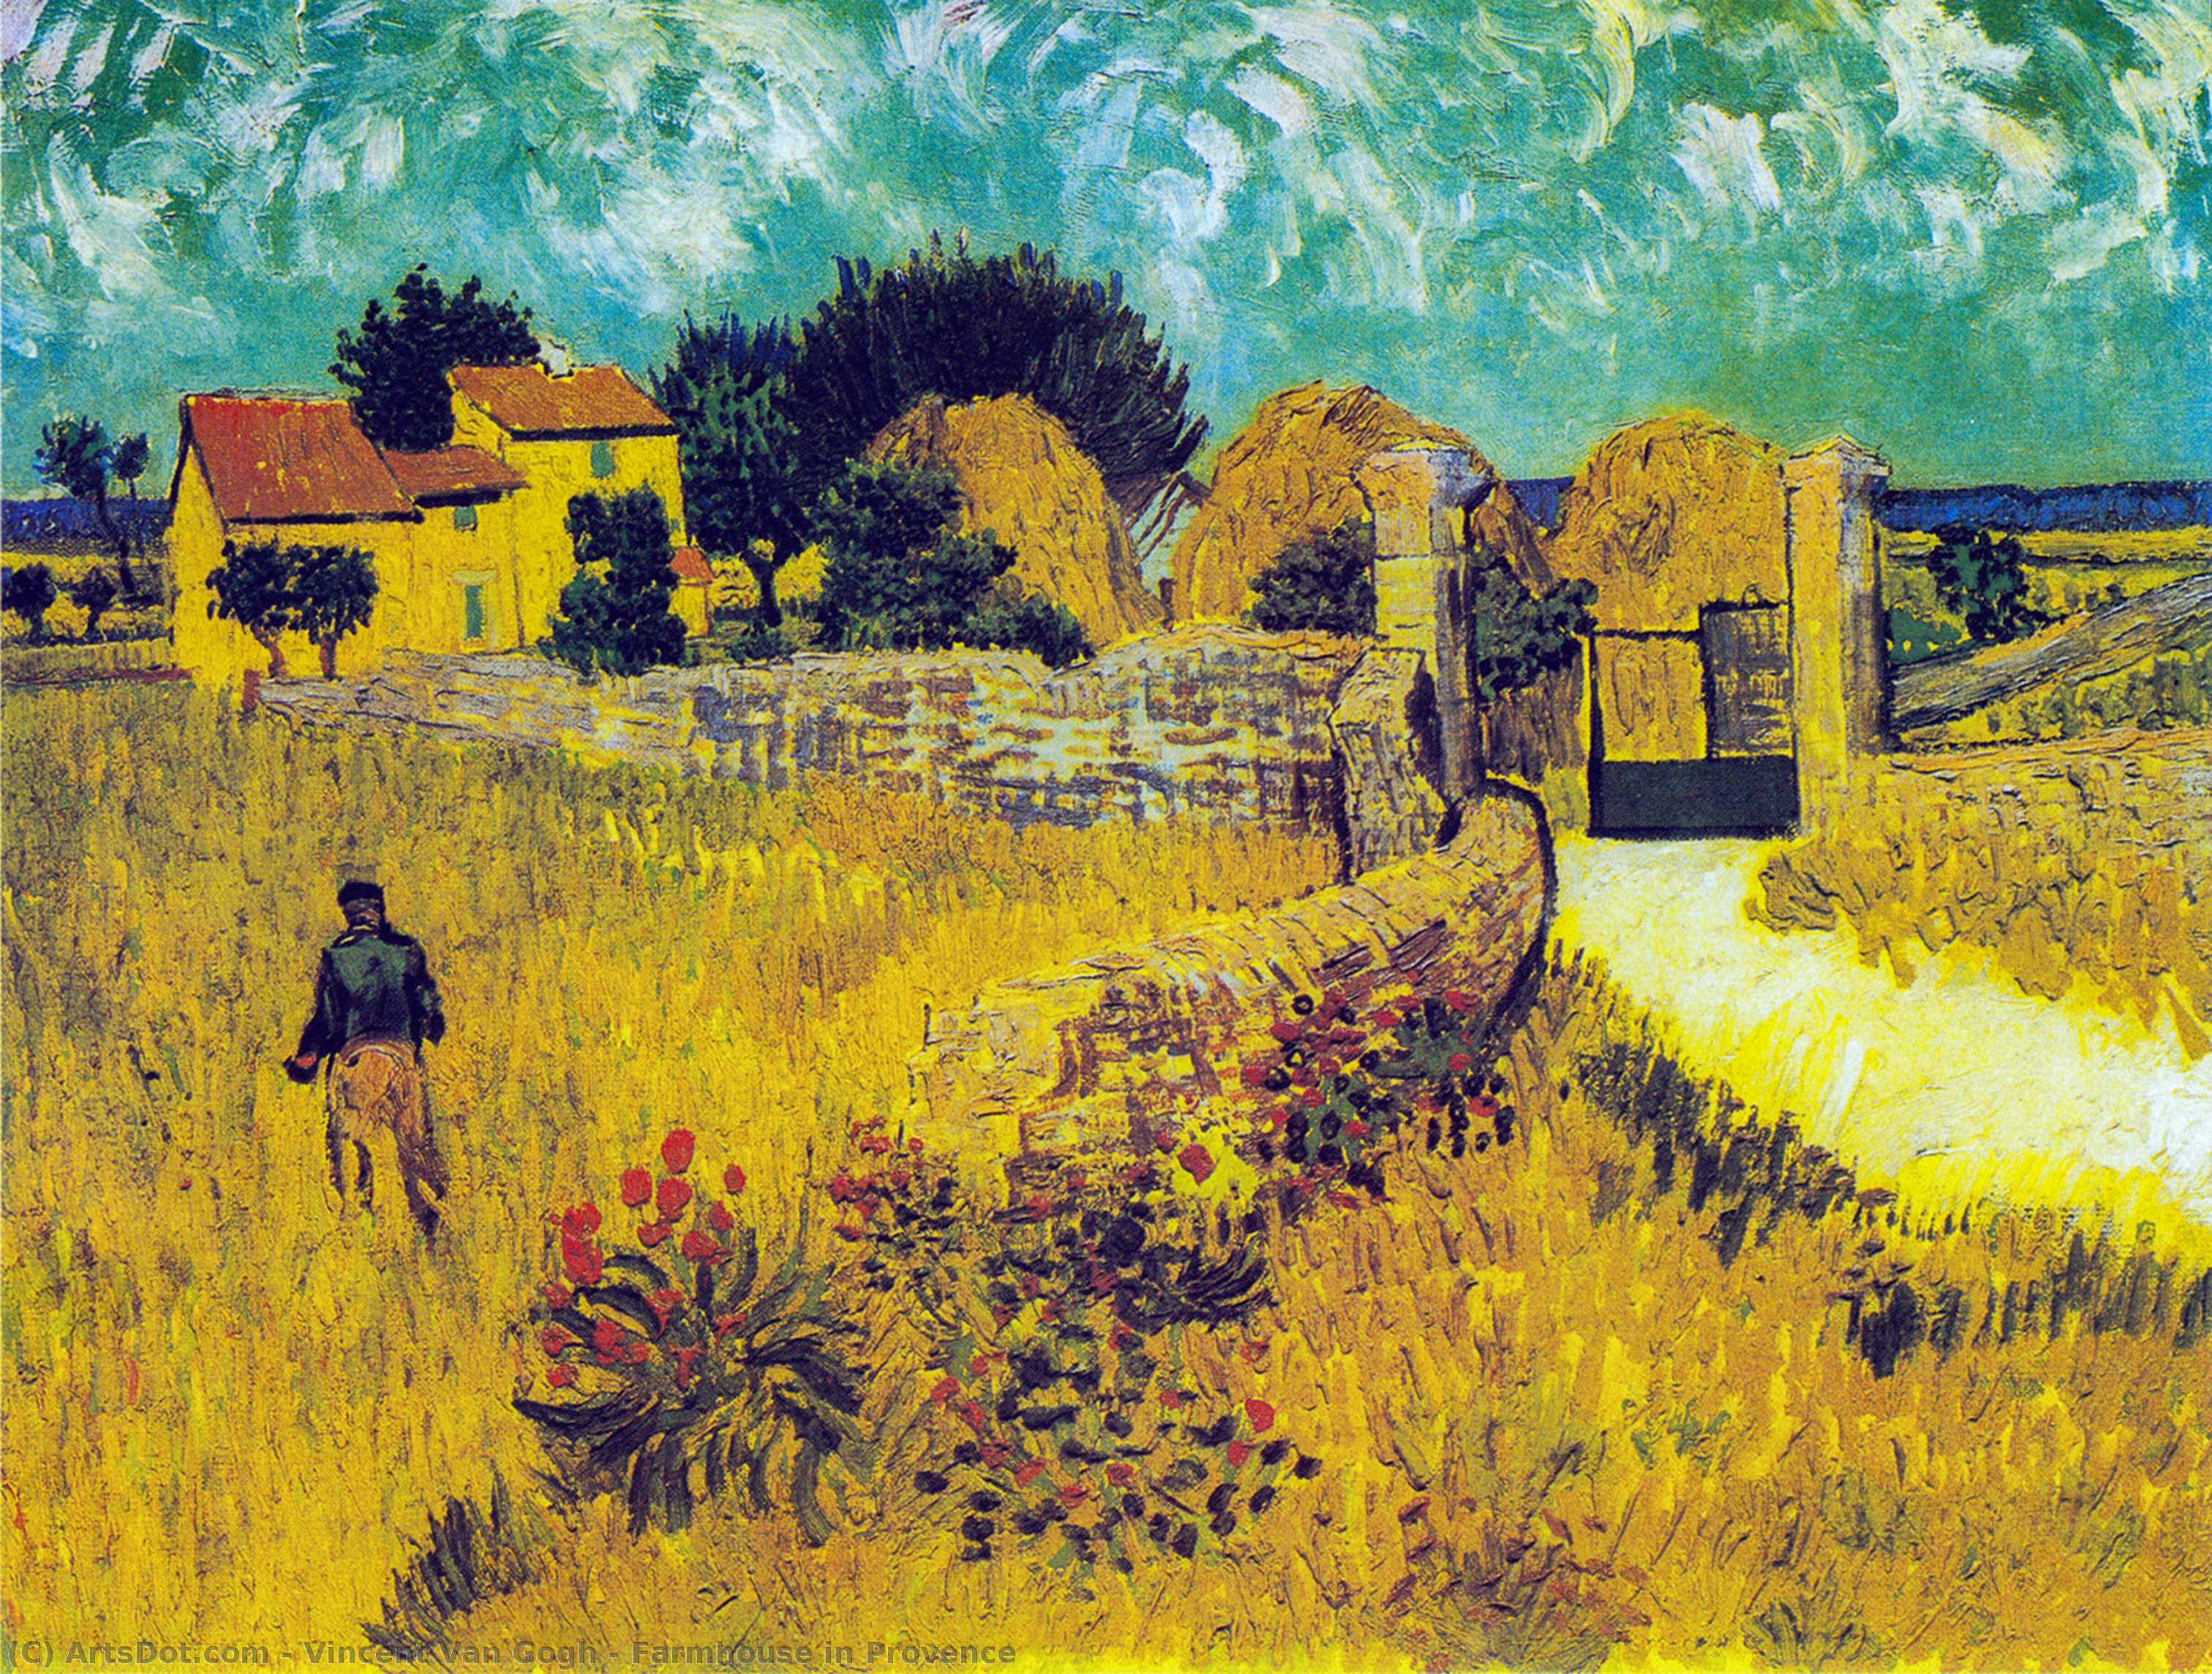 Farmhouse in Provence, 1888 by Vincent Van Gogh (1853-1890, Netherlands) | Paintings Reproductions Vincent Van Gogh | ArtsDot.com